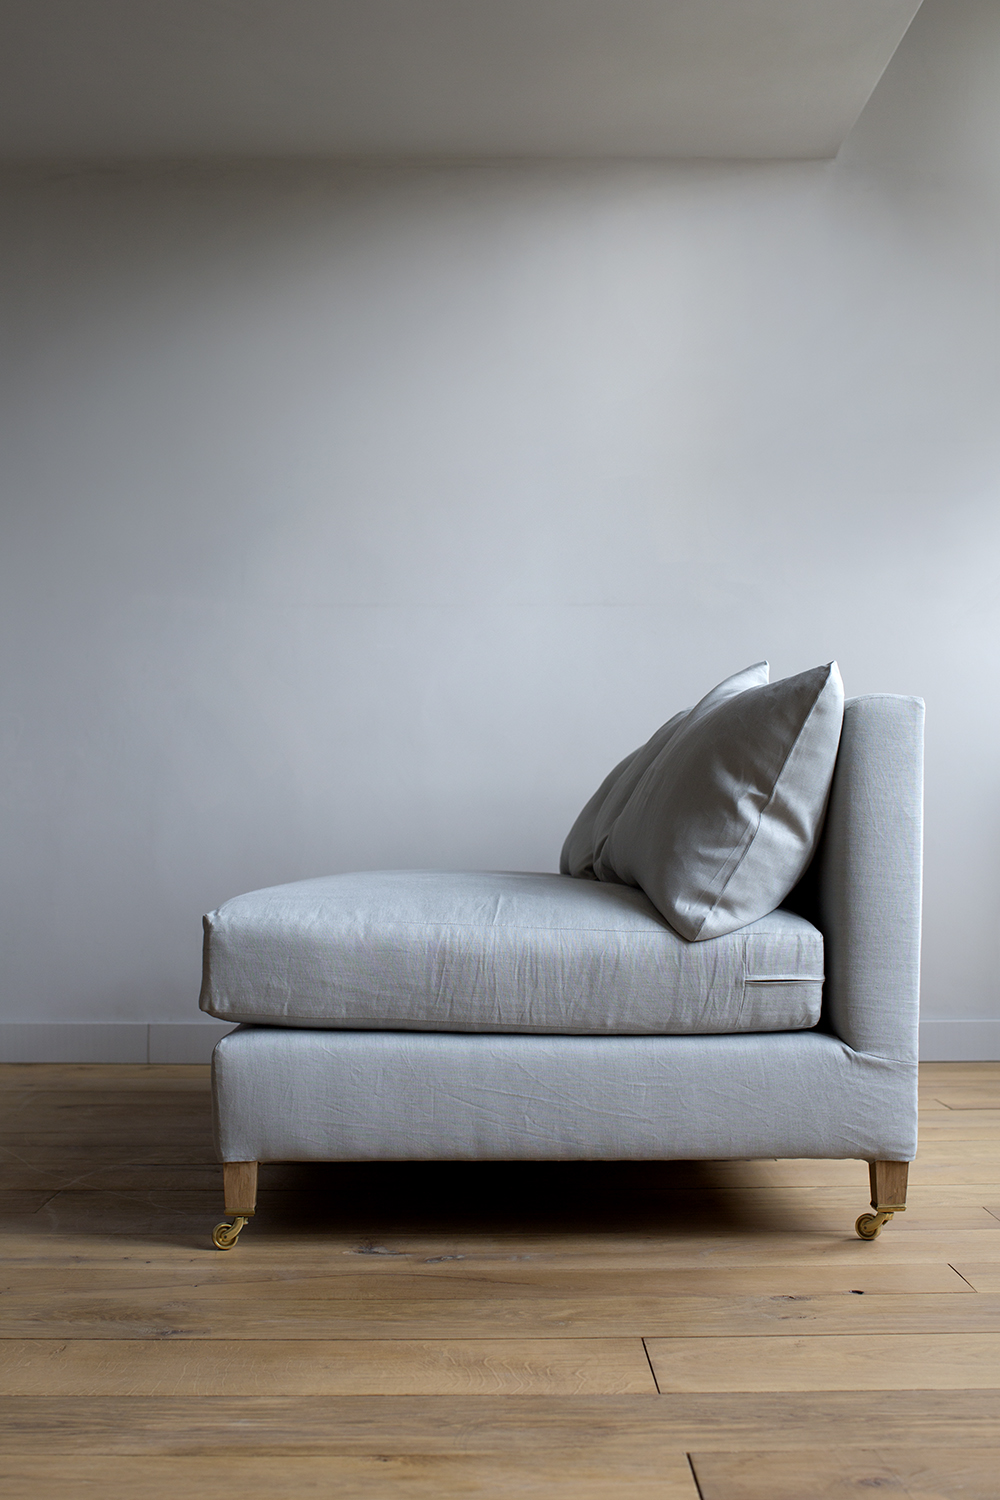 AtelierEllis - The Sofabed/BedSofa